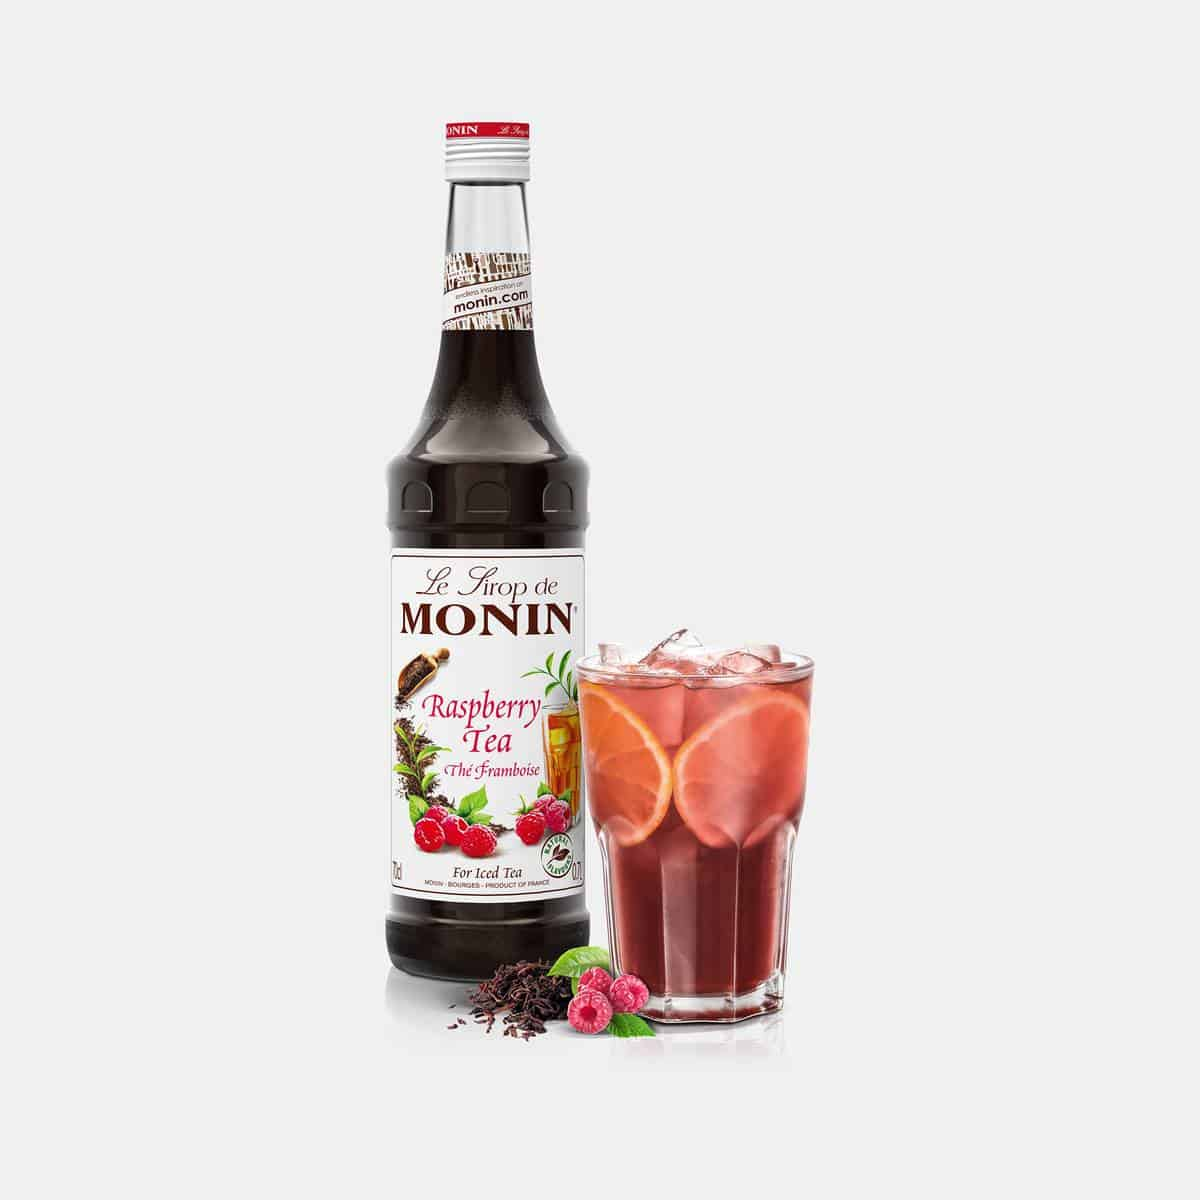 Monin 700ml Raspberry Tea Syrup Glass Bottle with Drink